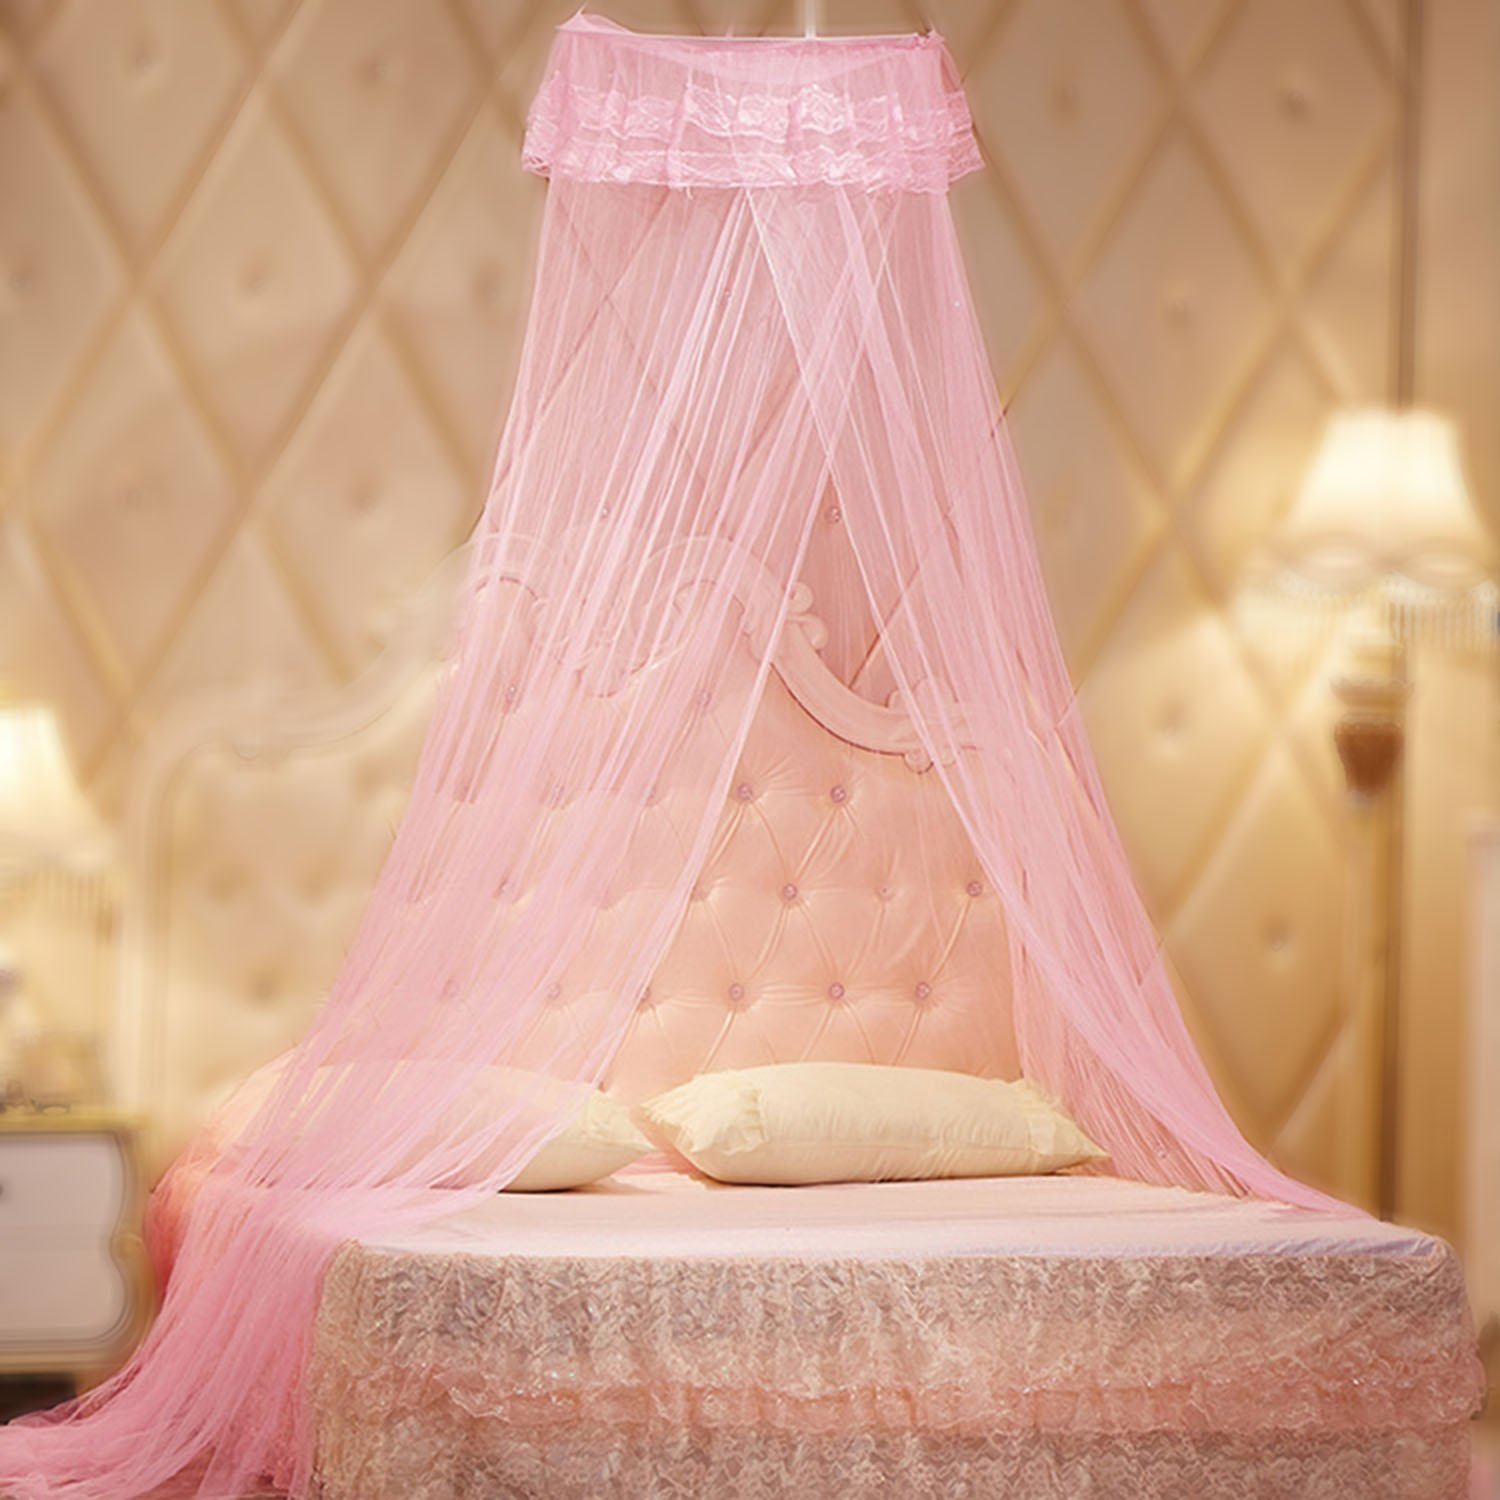 Yimii Round Dome Mosquito Net Princess Bed Canopy, Mosquito Netting Bed Curtains Hanging Canopy for Girls - Pink.